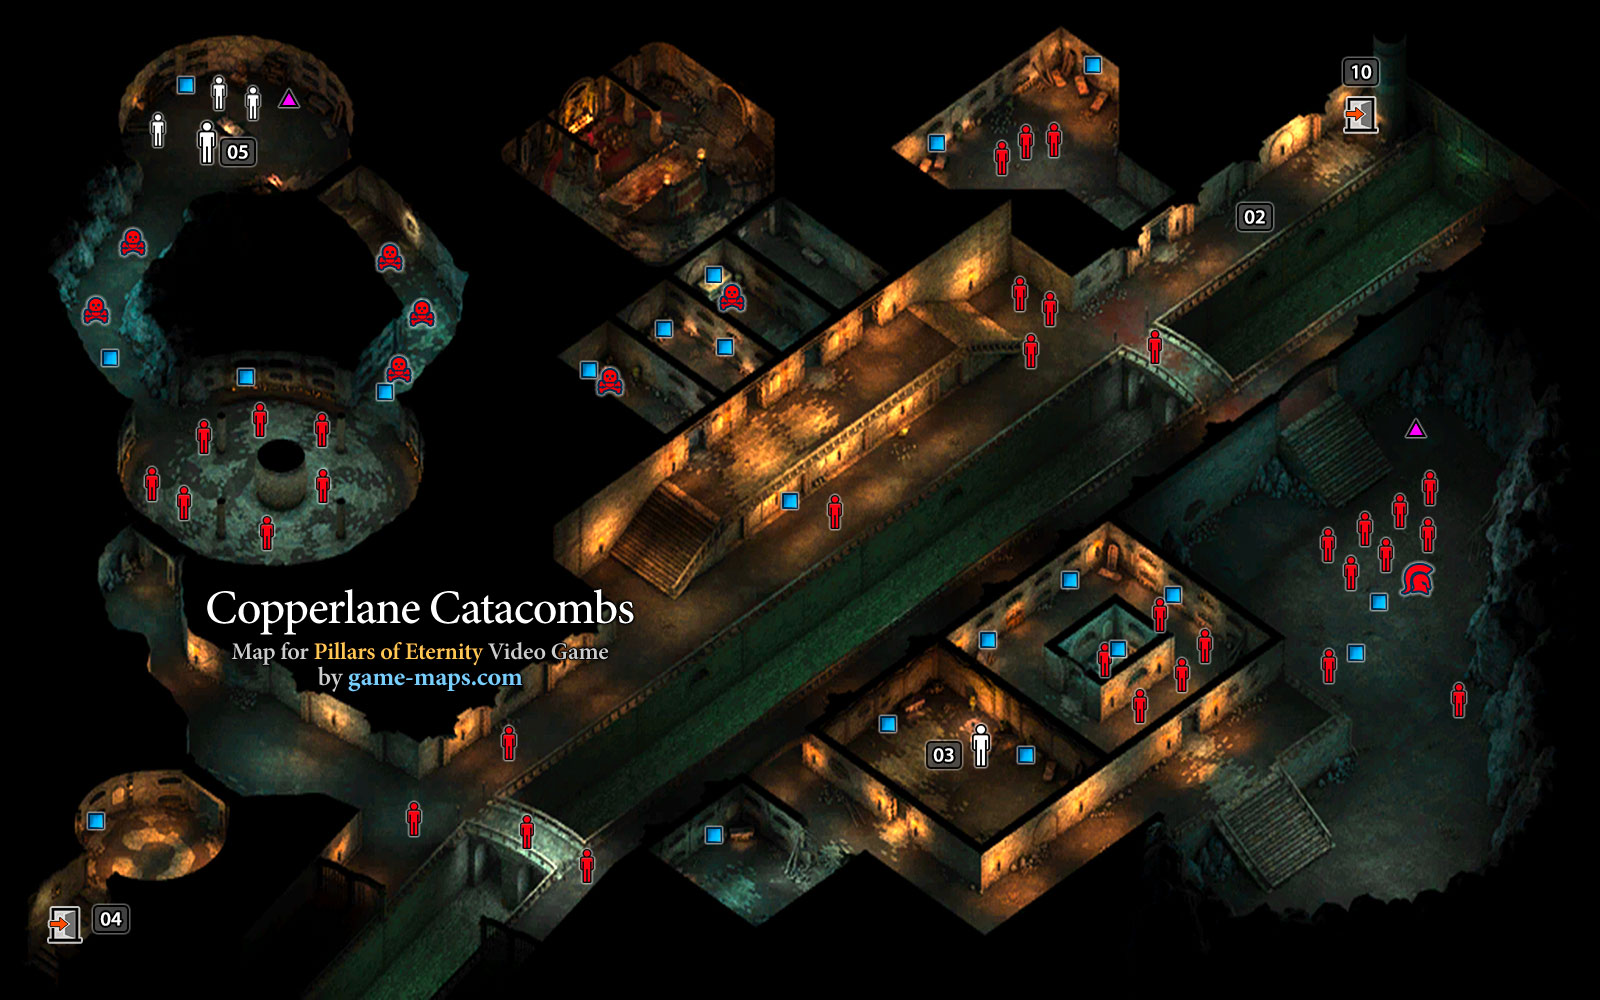 map of copperlane catacombs defiance bay pillars of eternity